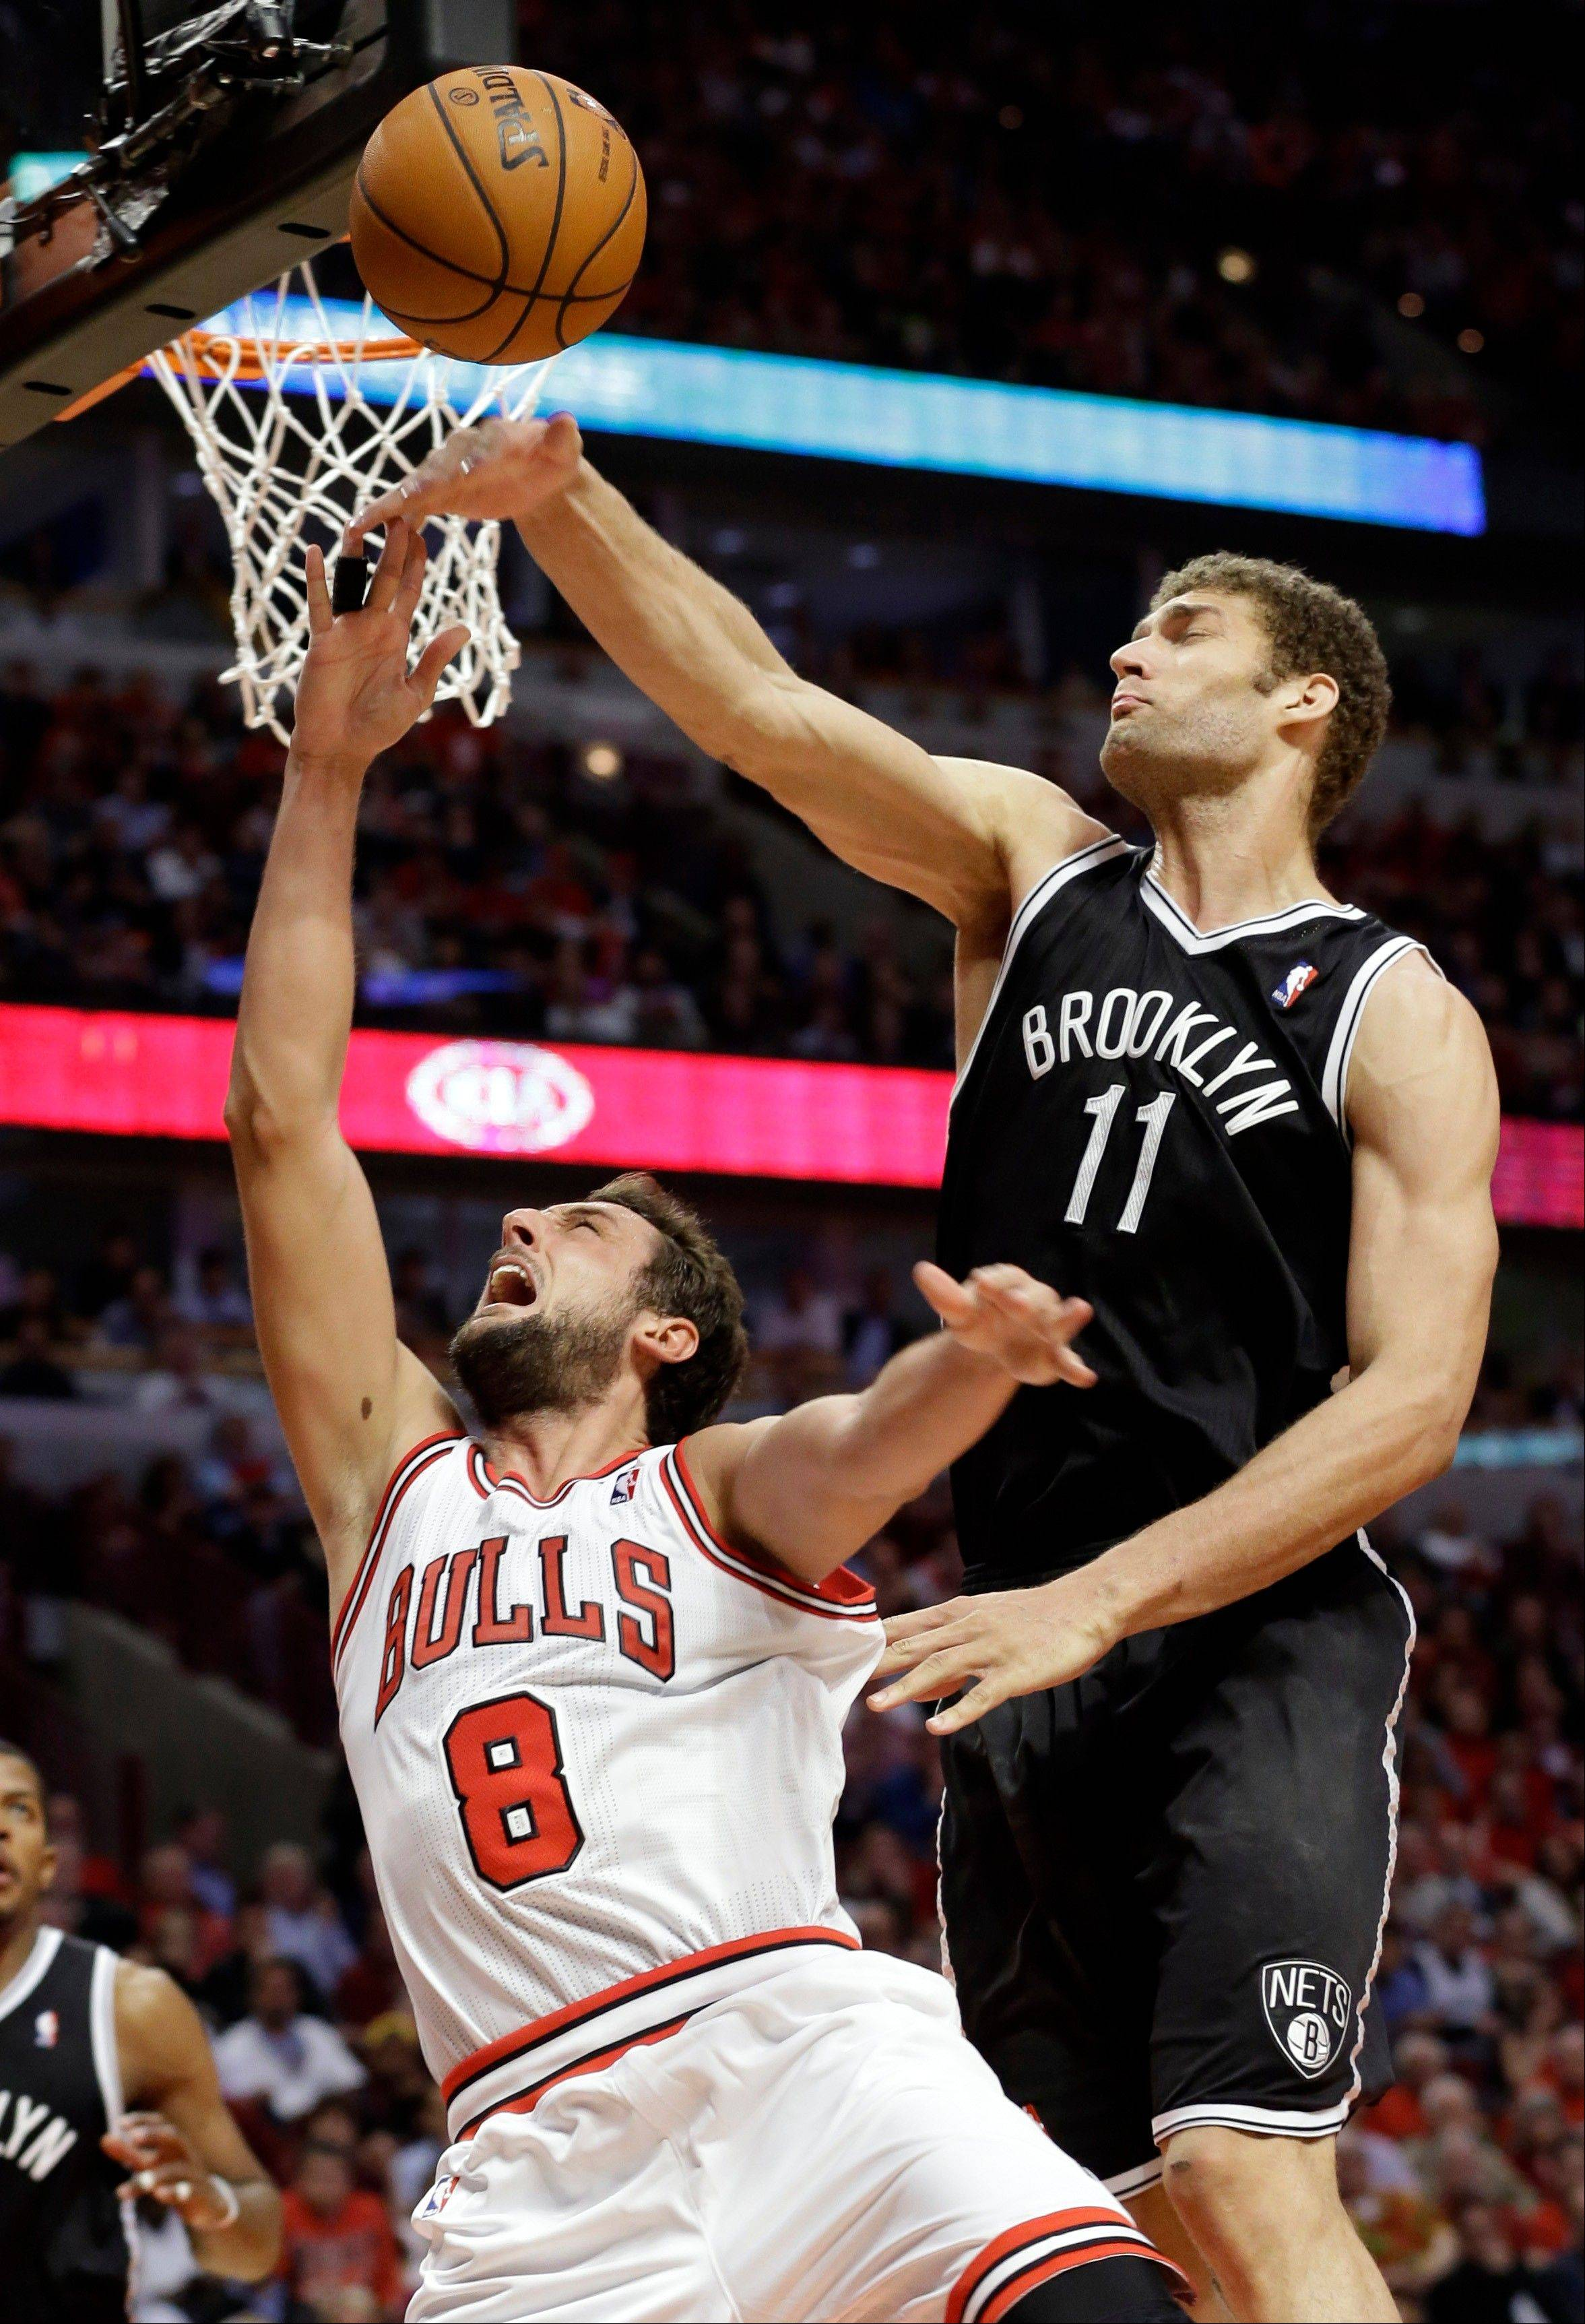 Brooklyn Nets center Brook Lopez (11) blocks a shot by Chicago Bulls guard Marco Belinelli, of Italy, during the second half in Game 6 of their first-round NBA basketball playoff series in Chicago, Thursday, May 2, 2013. The Nets won 95-92.